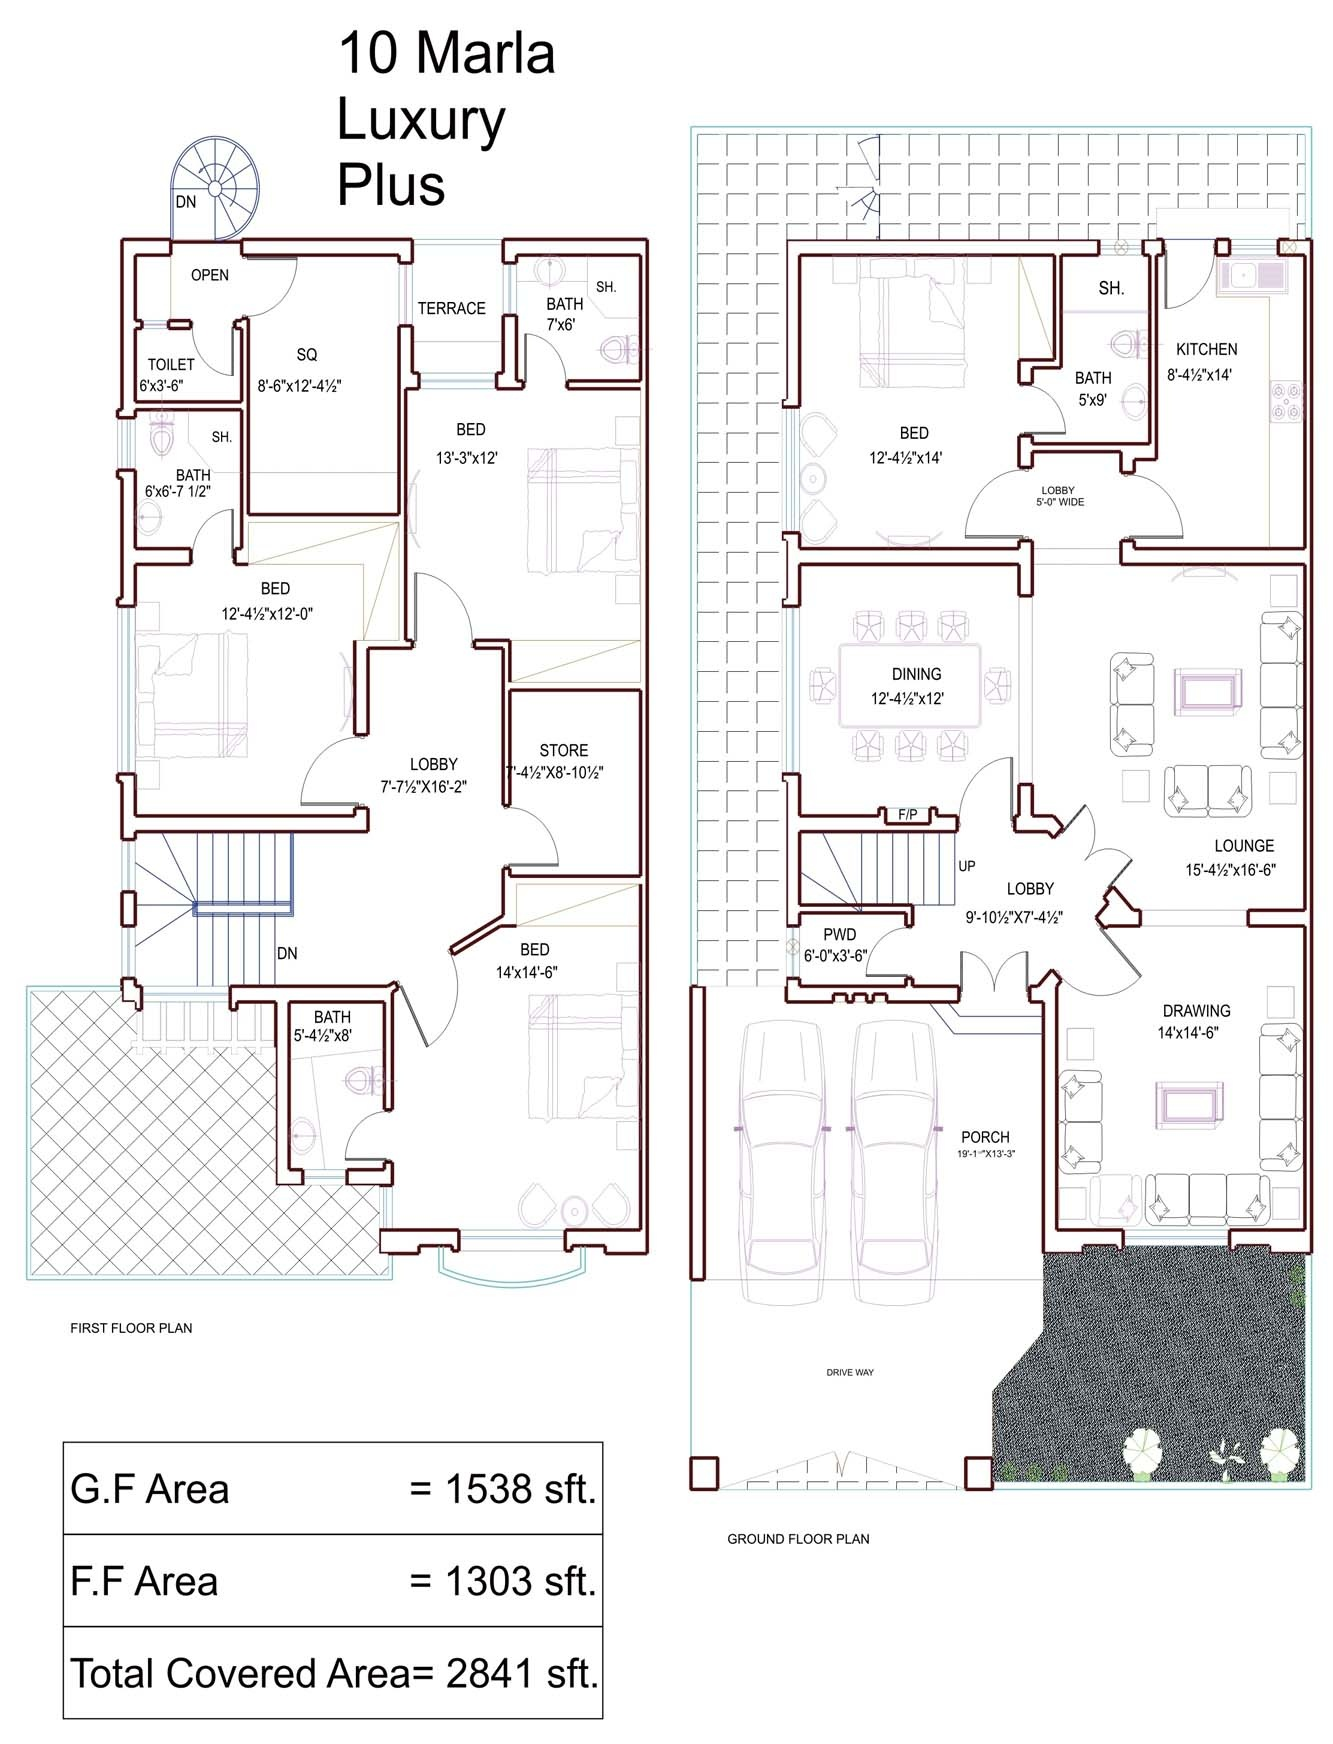 10 Marla House Plans - Civil Engineers PK